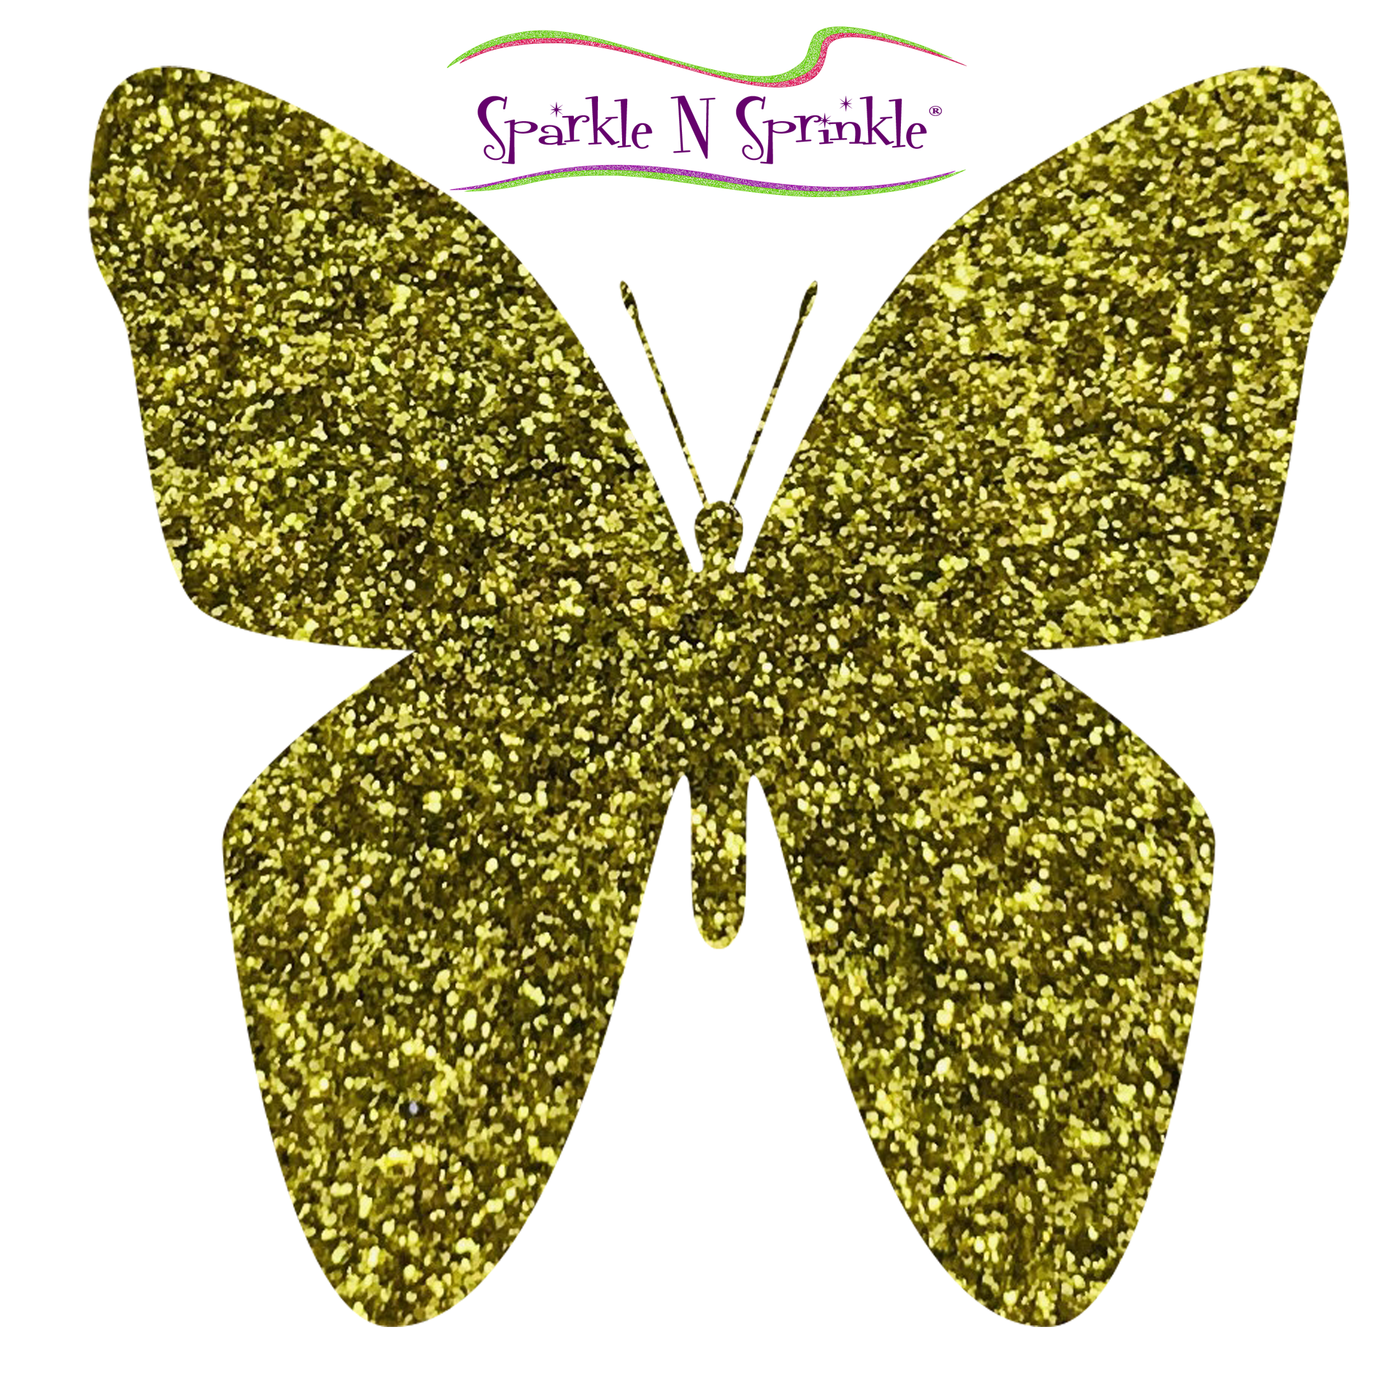 Ultrafine Glitter Citron Green [G1087]